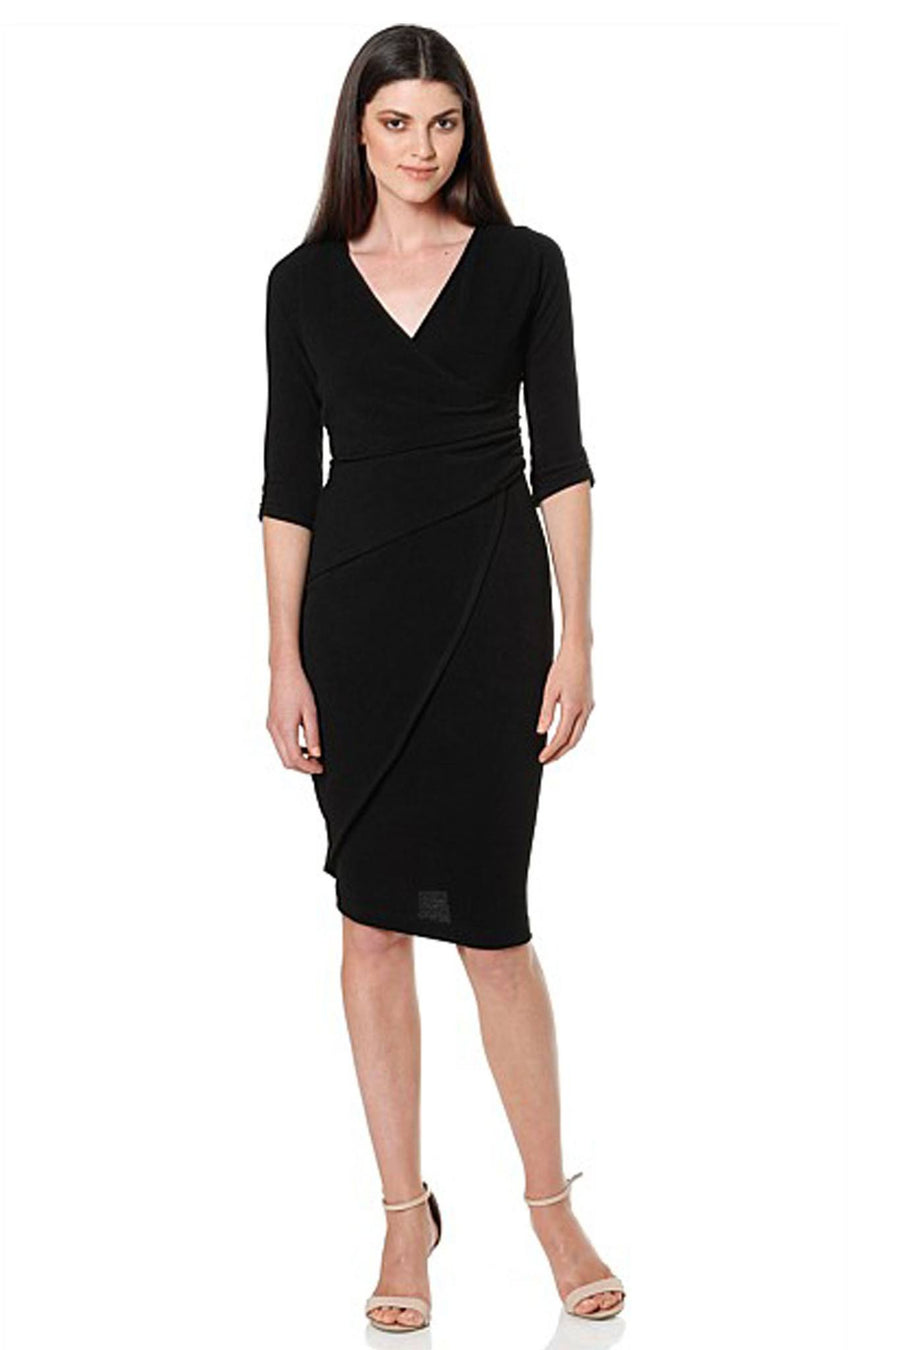 Faux Wrap Dress by Sacha Drake Frockaholics.com